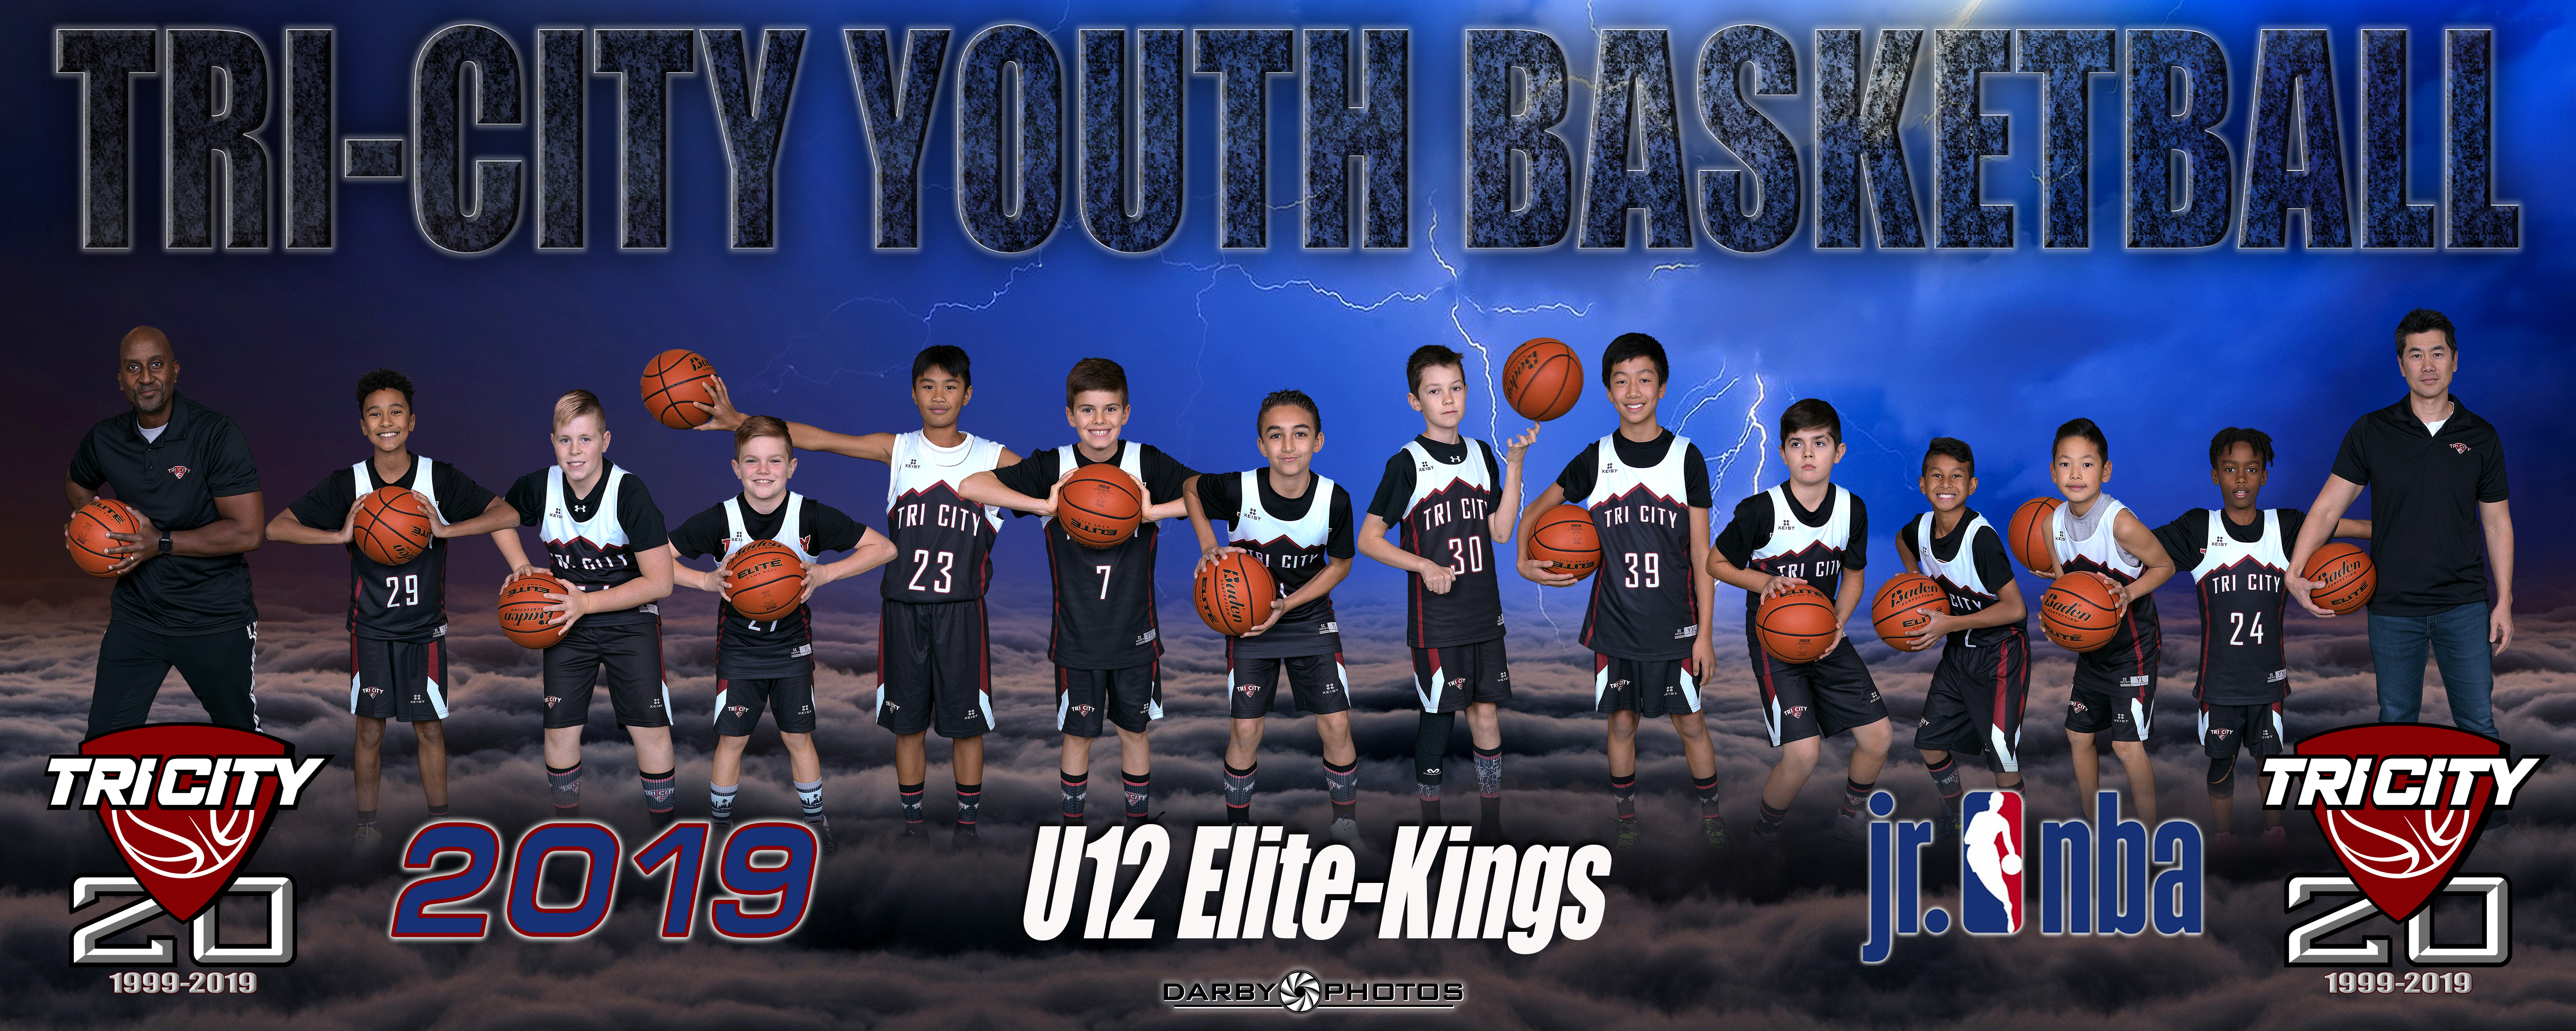 U12 Elite Kings 2019-20